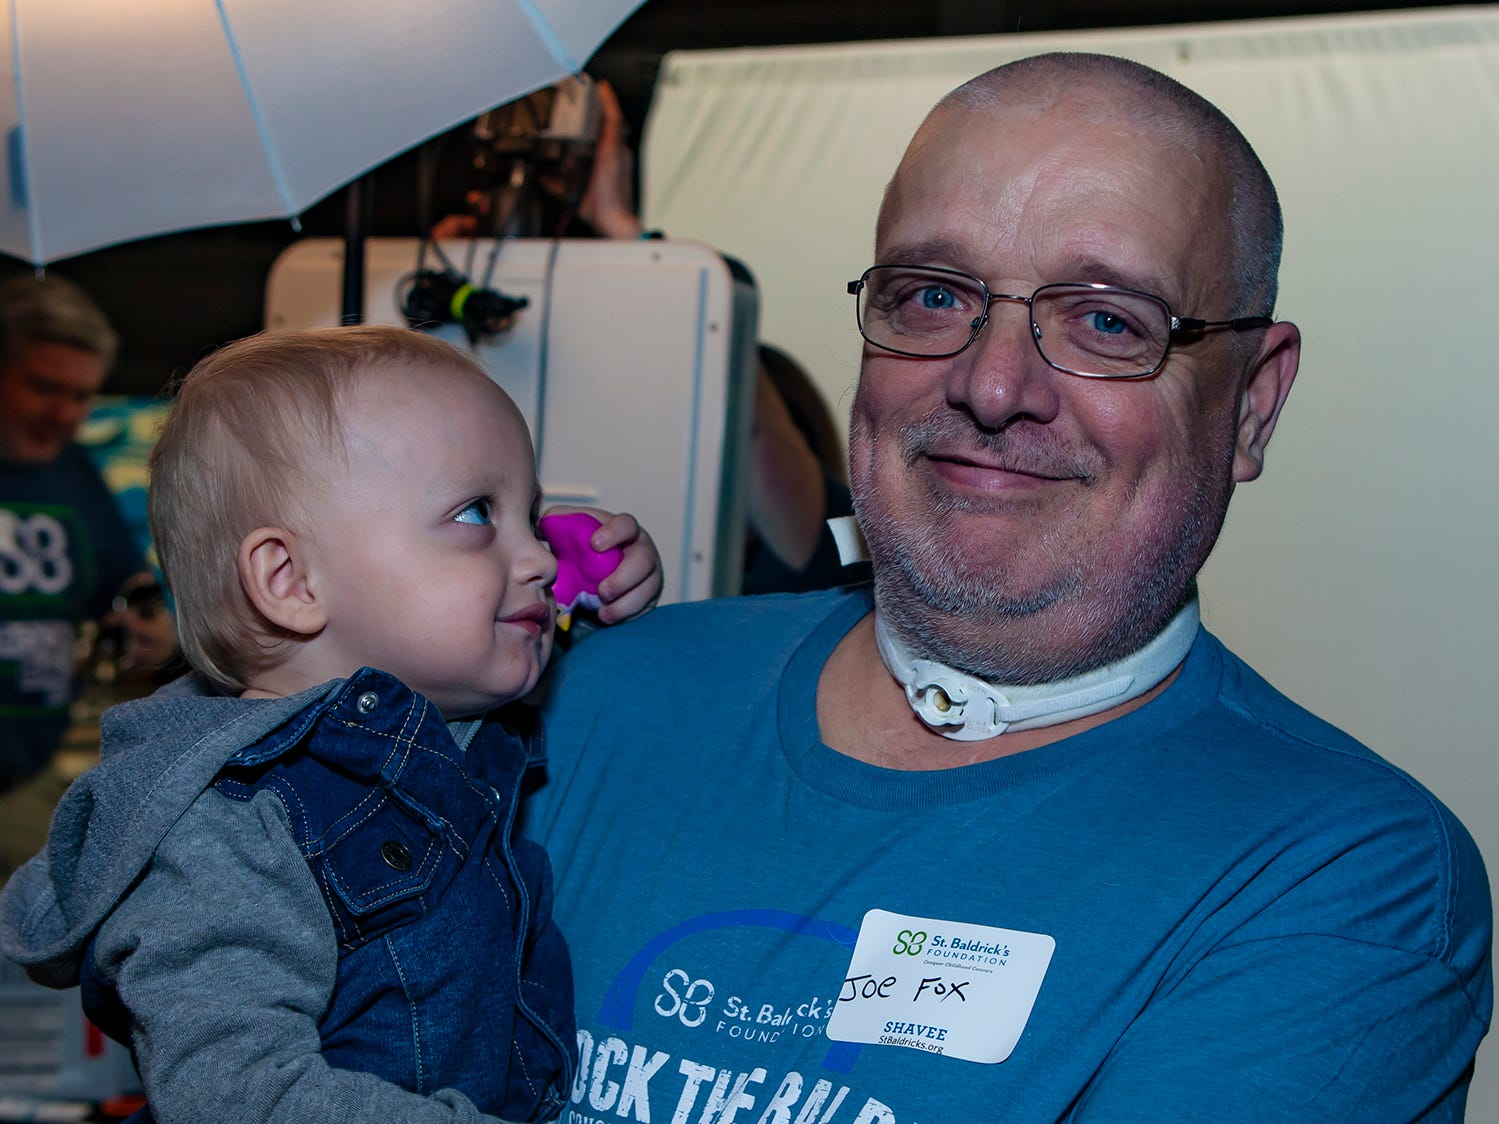 Bralynn Fox, 16  months, takes in granfdather Joe Fox's new look at the ninth annual Bald in the Boro fundraiser for the St. Baldrick's Foundation. The event was held Friday, March 15, 2019 at Lanes, Trains and Automobiles in Murfreesboro.